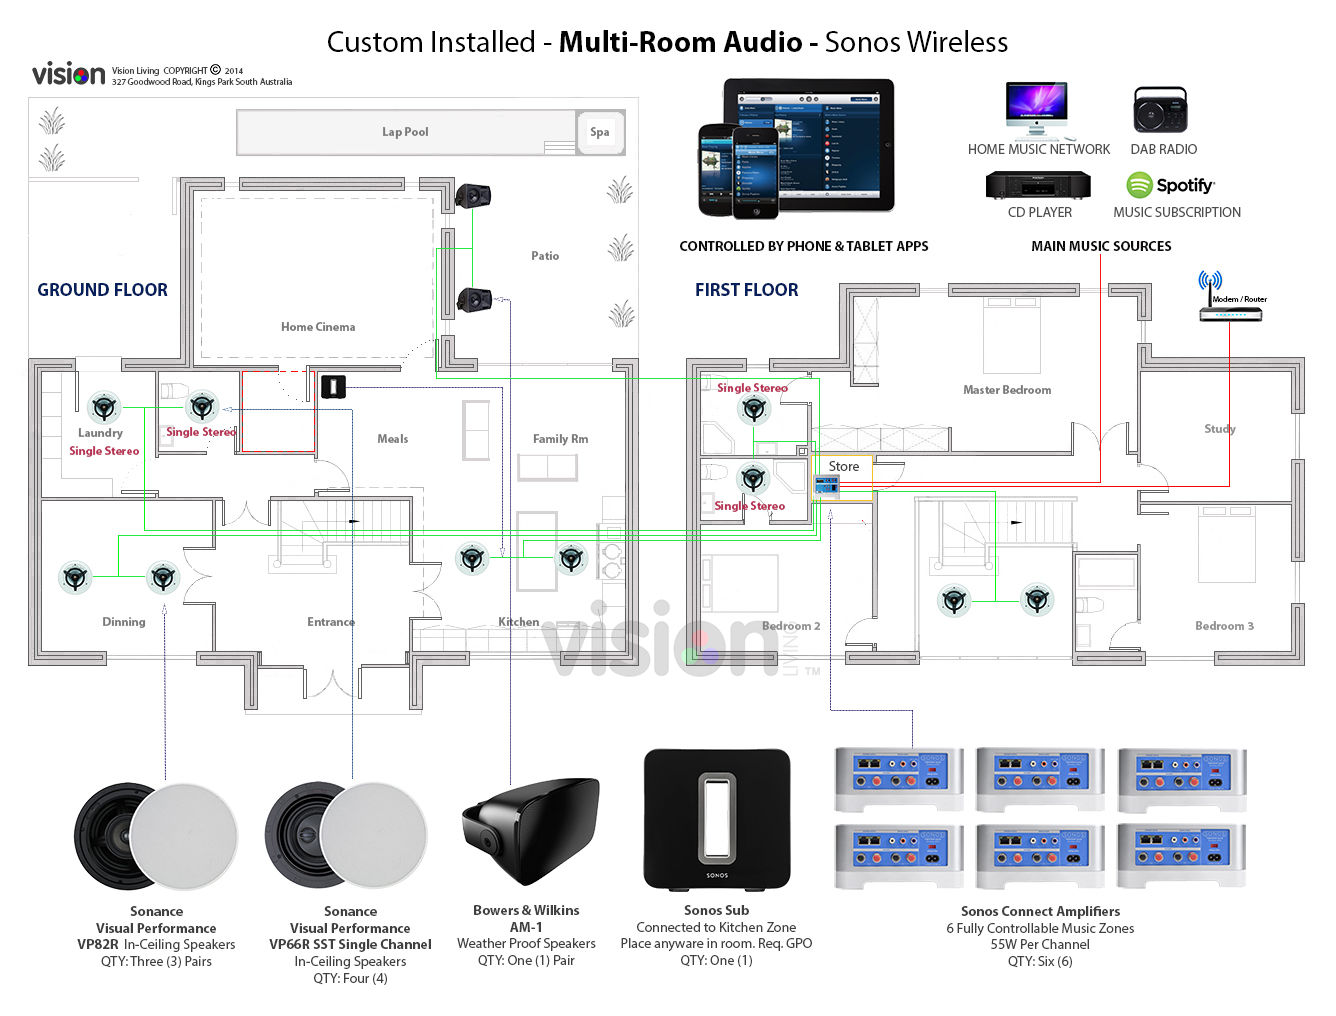 Multiroom Audio And Video Vision Living Dsl Outside Box Wiring Diagram If You Love Music Will Its As Simple That It Makes So Easyto Add To Your Life In One Room Or Many